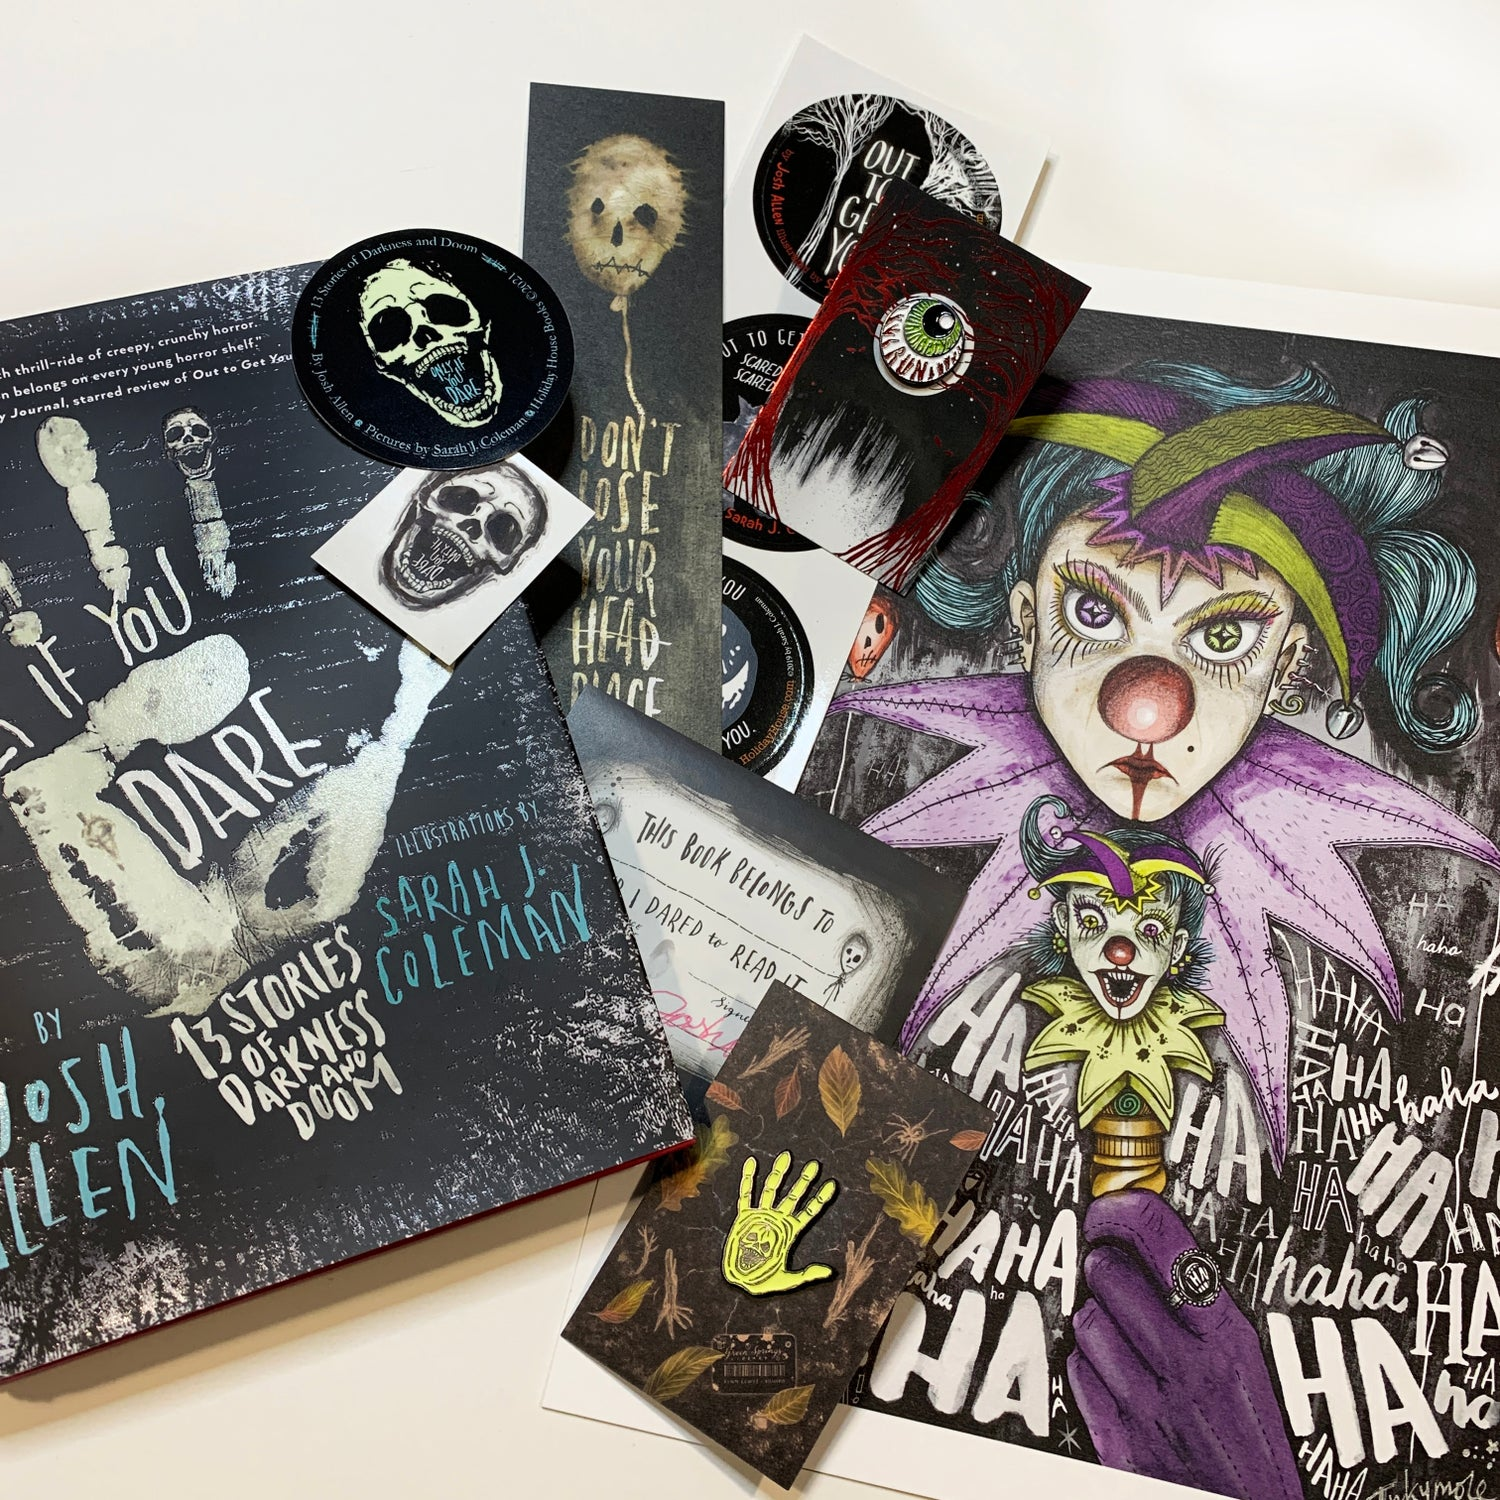 'Only If You Dare' Signed Art + Signed Book + Pin Badge (choice of 2) + SWAG